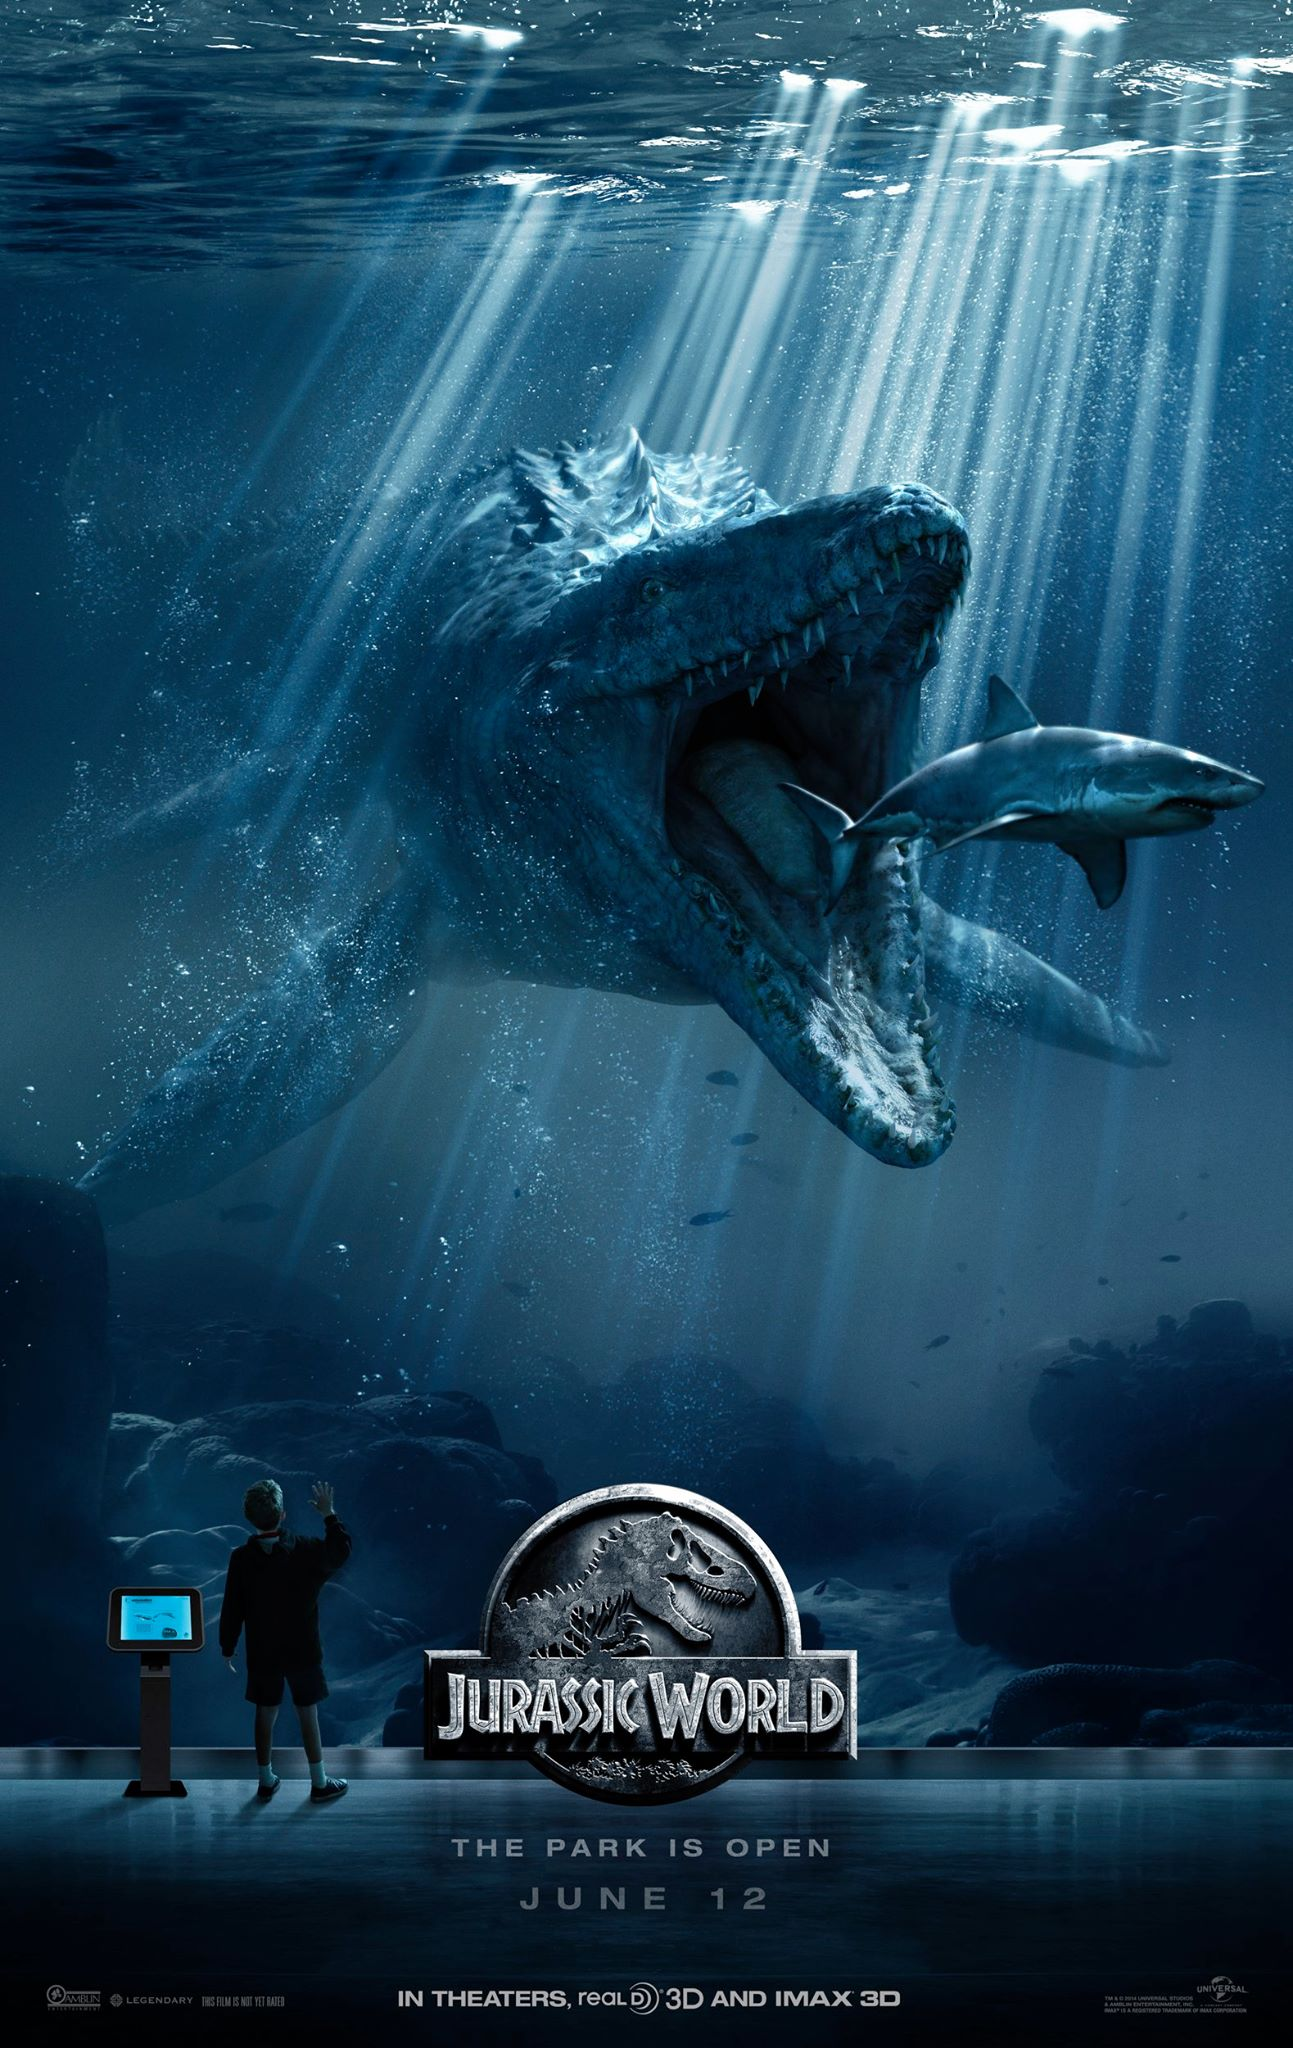 Jurassic World posters collection